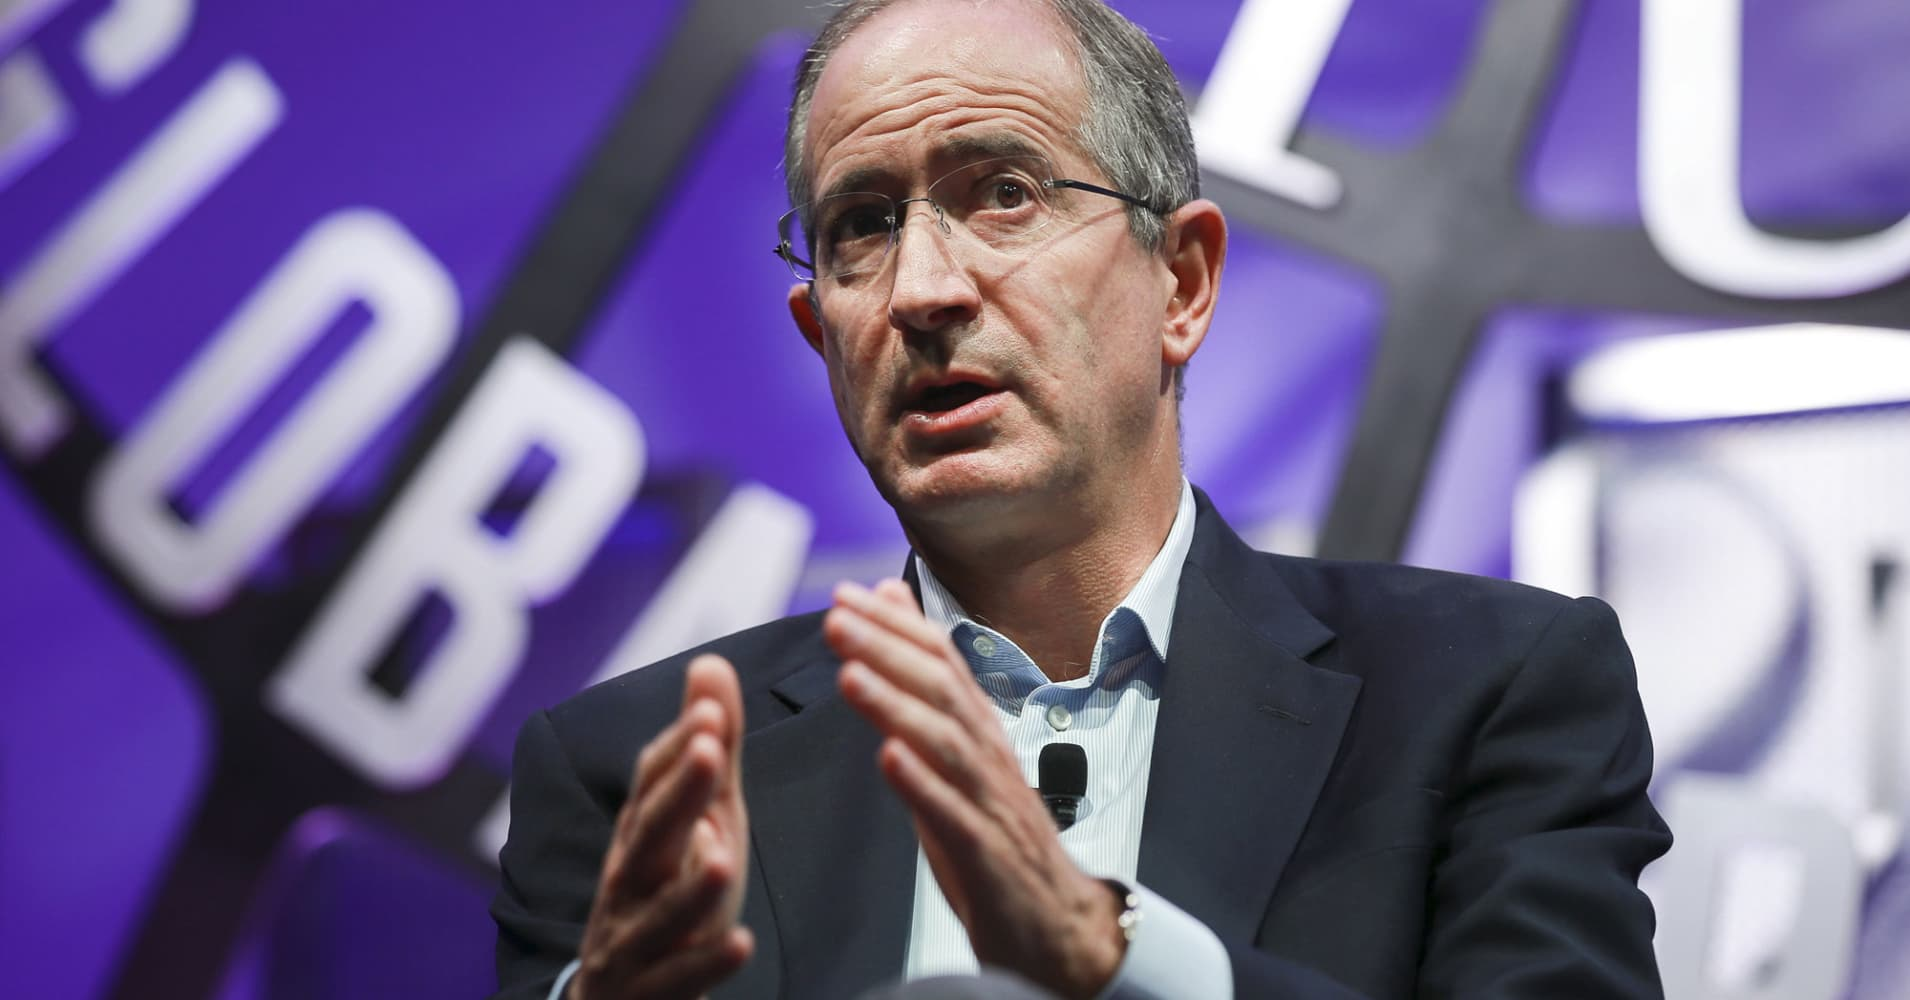 Comcast is in the advanced stages of preparing all-cash bid for Fox assets